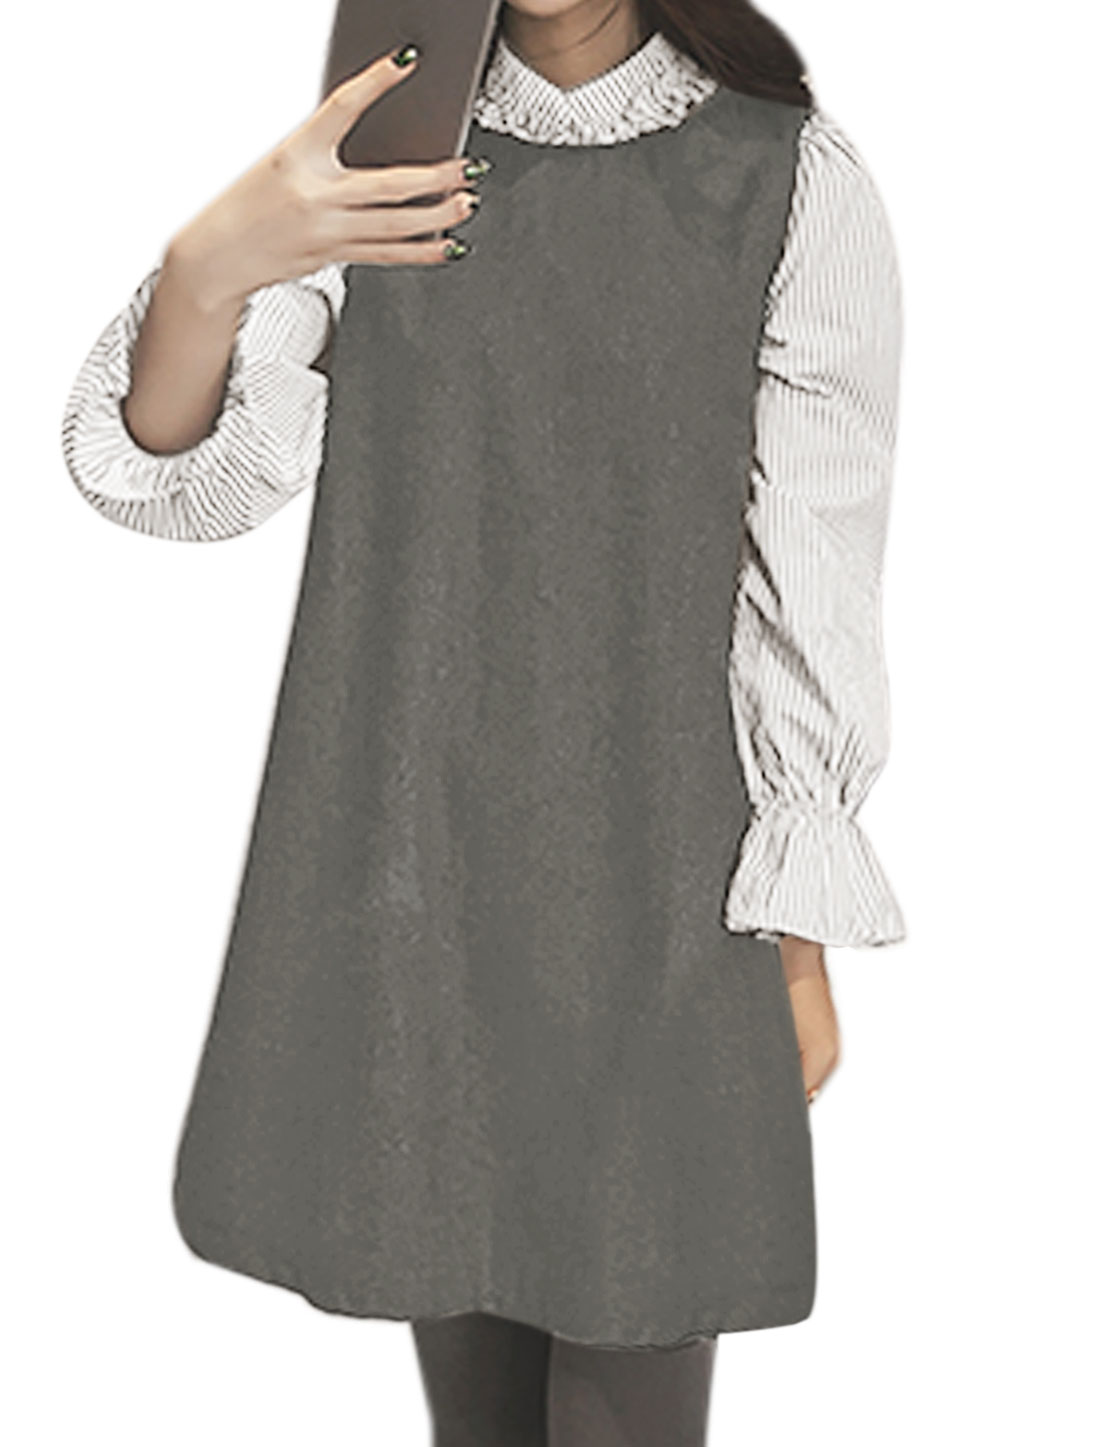 Women Stand Collar Stripes Print Shirt w Worsted Tunic Dress Sets Gray XS